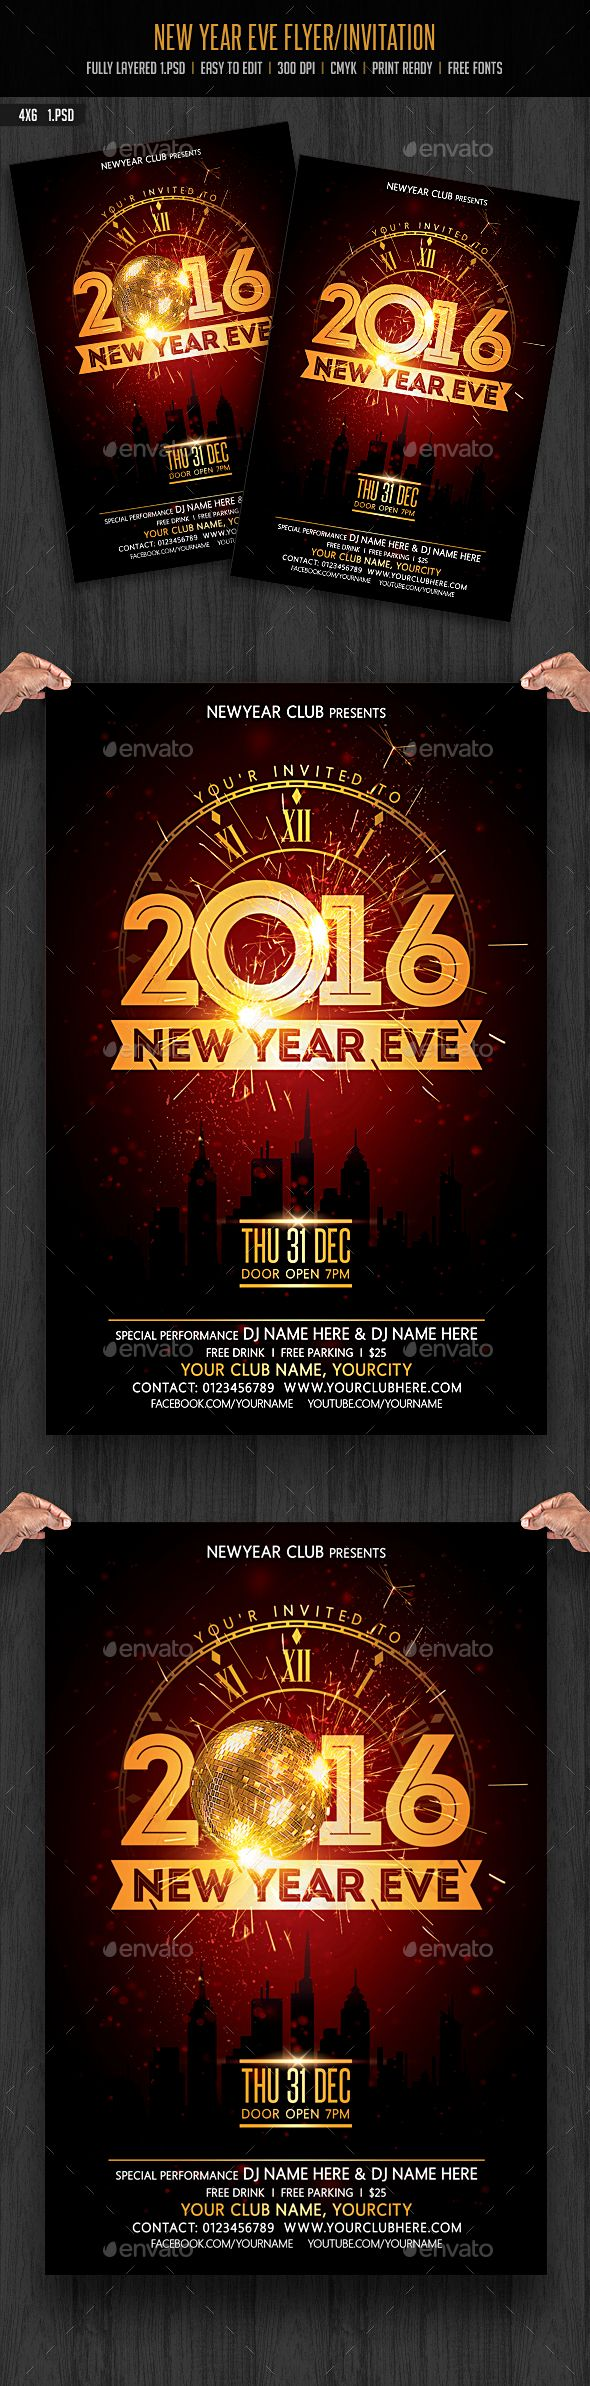 new year eve flyer invitation party events new years party new year eve flyer invitation photoshop psd new year party flyer